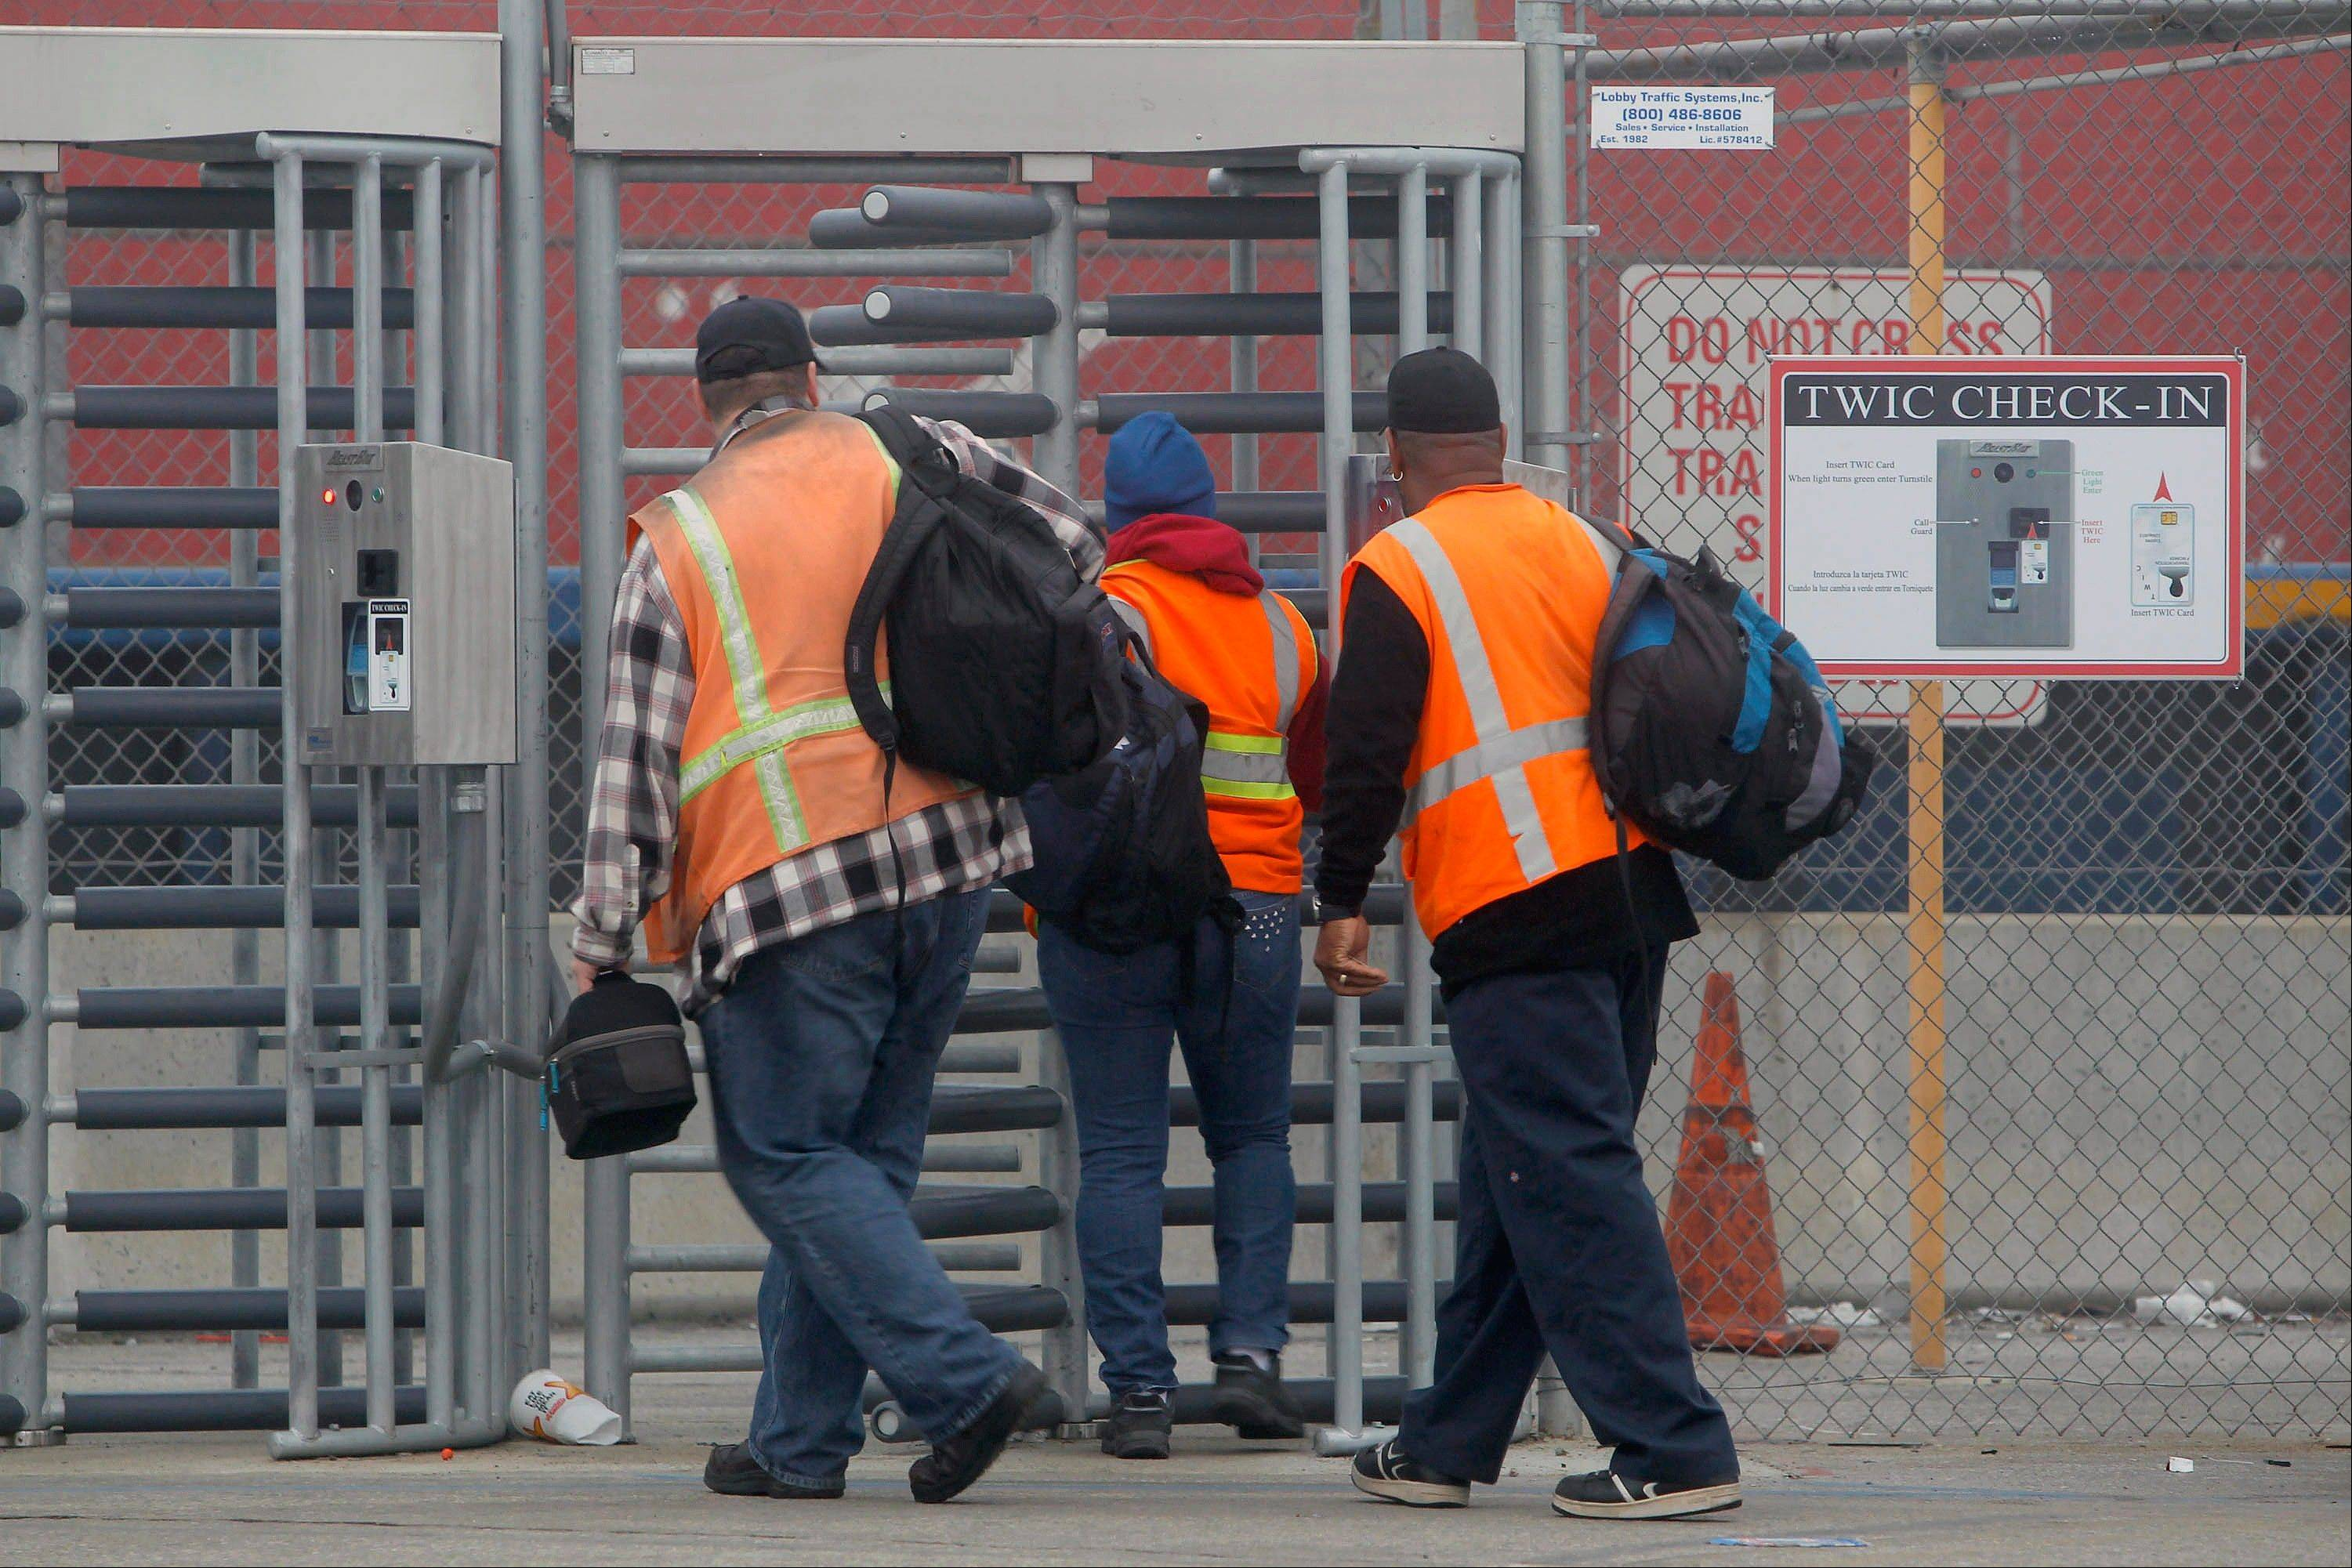 Port workers return to work at the Port of Long Beach Wednesday, Dec. 5, 2012. Work resumed at the Los Angeles and Long Beach harbors after settlement of a strike that crippled the nation's busiest container port complex for more than a week.